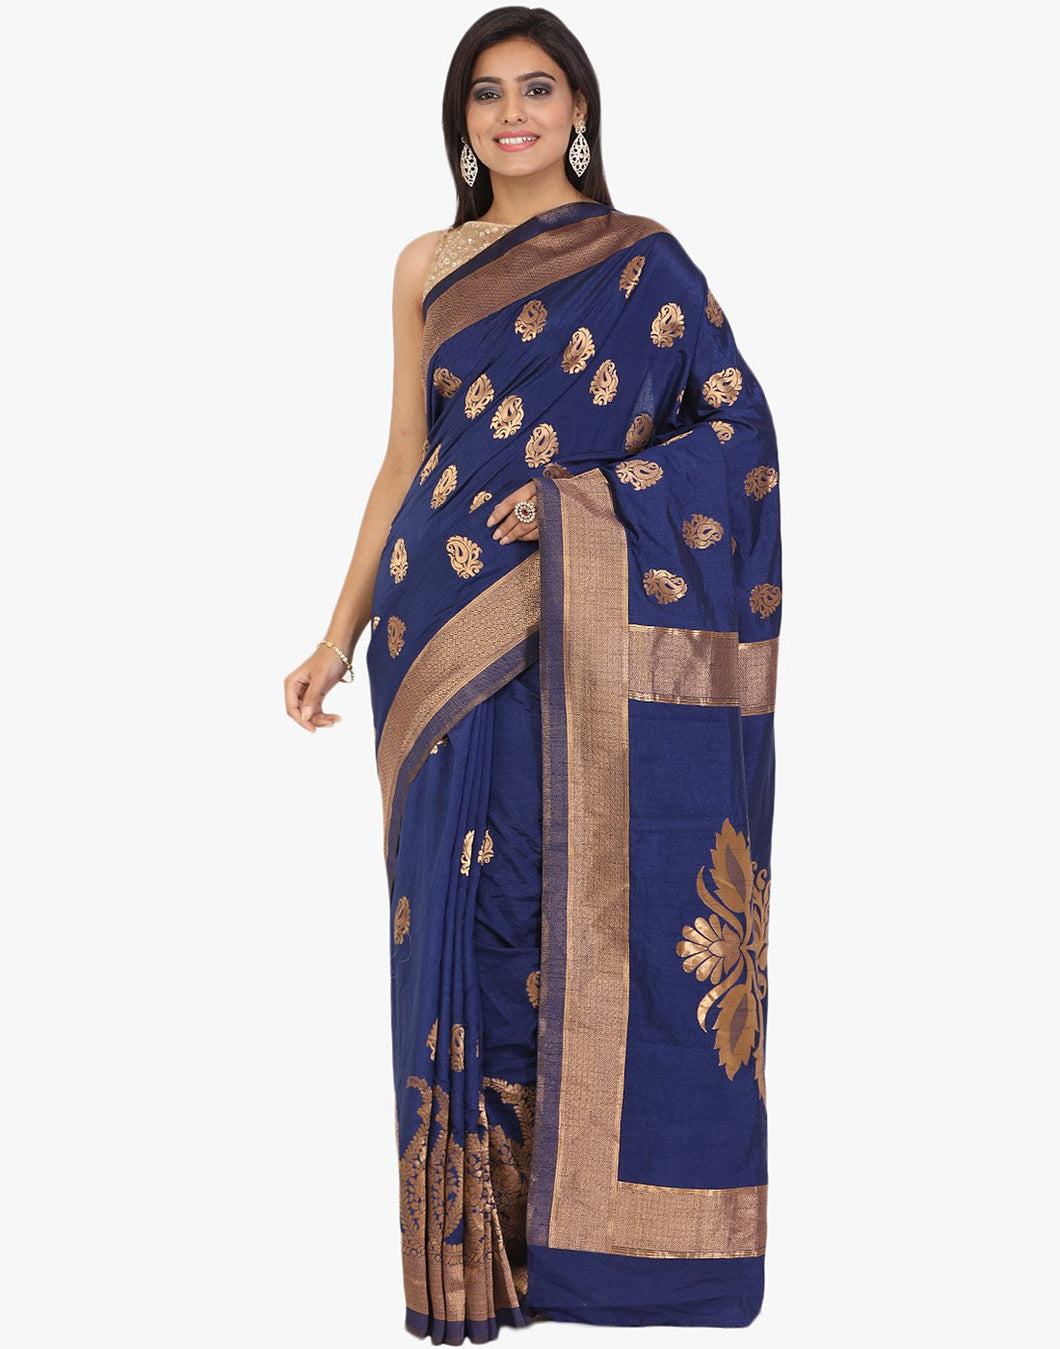 Handloom Silk Saree With All-over Woven Zari Paisley Booti By Meena Bazaar